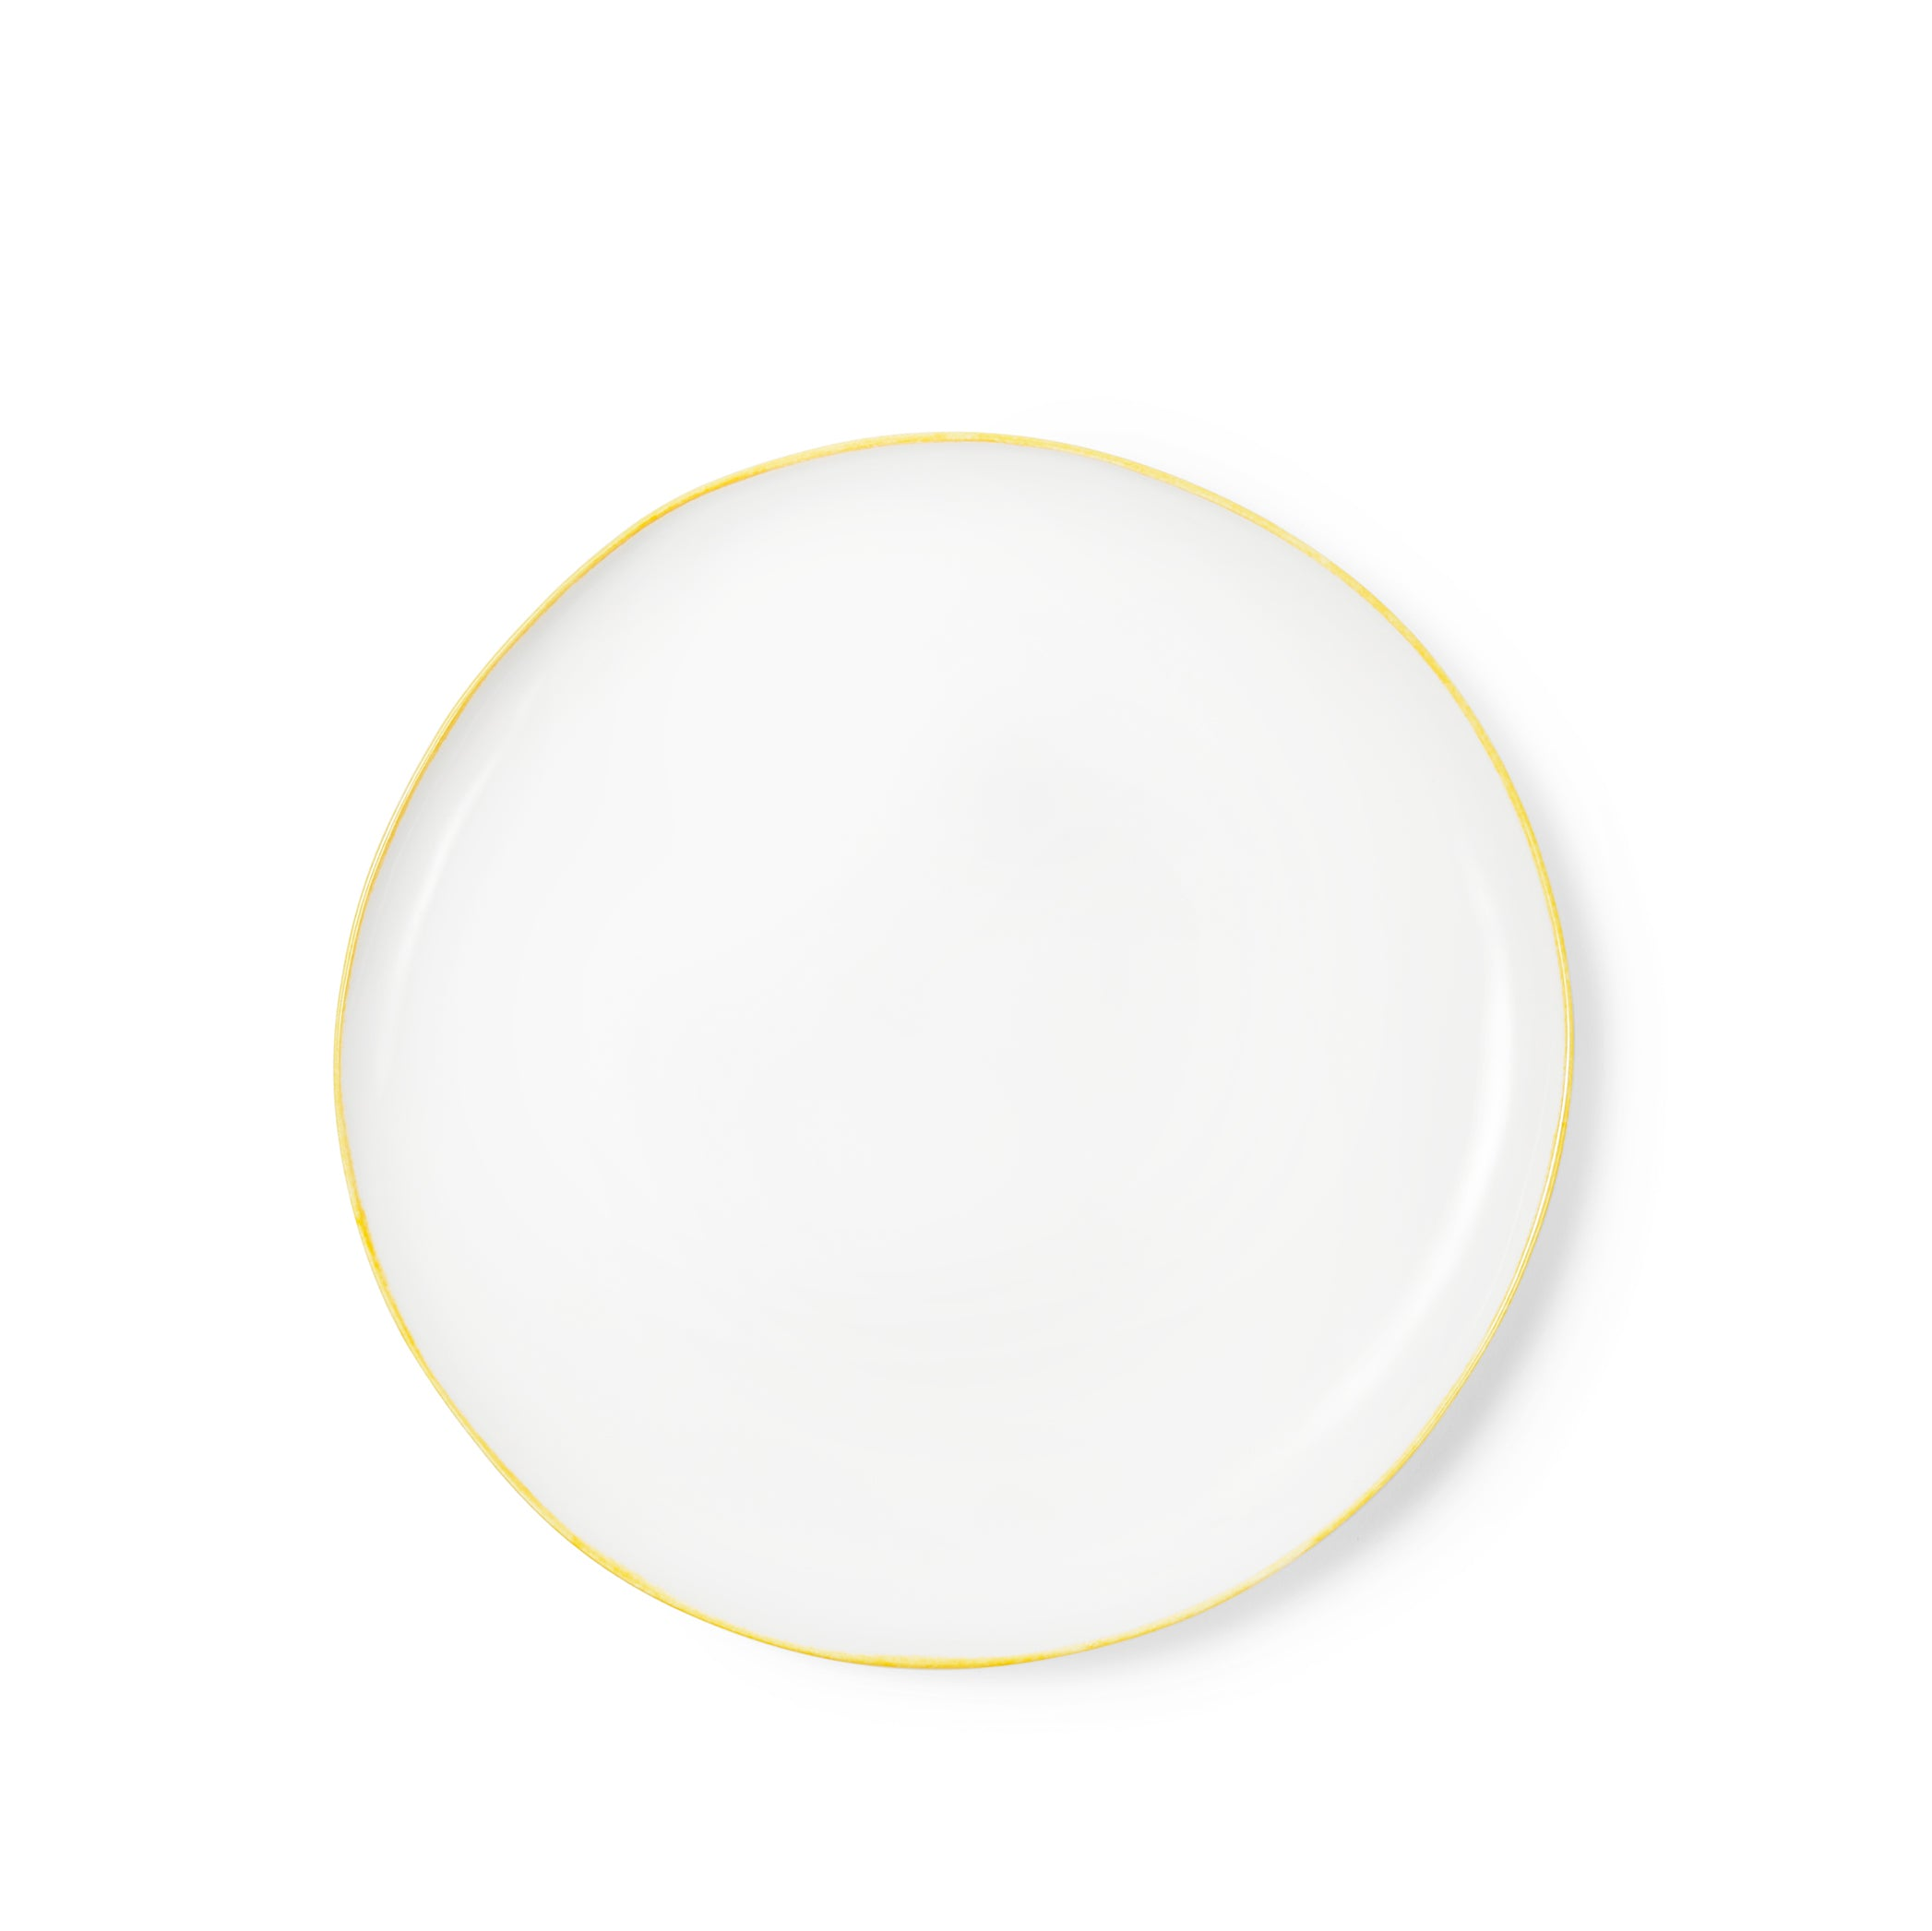 Made to Order - S&B Handmade 31cm Porcelain Dinner Plate with Yellow Rim